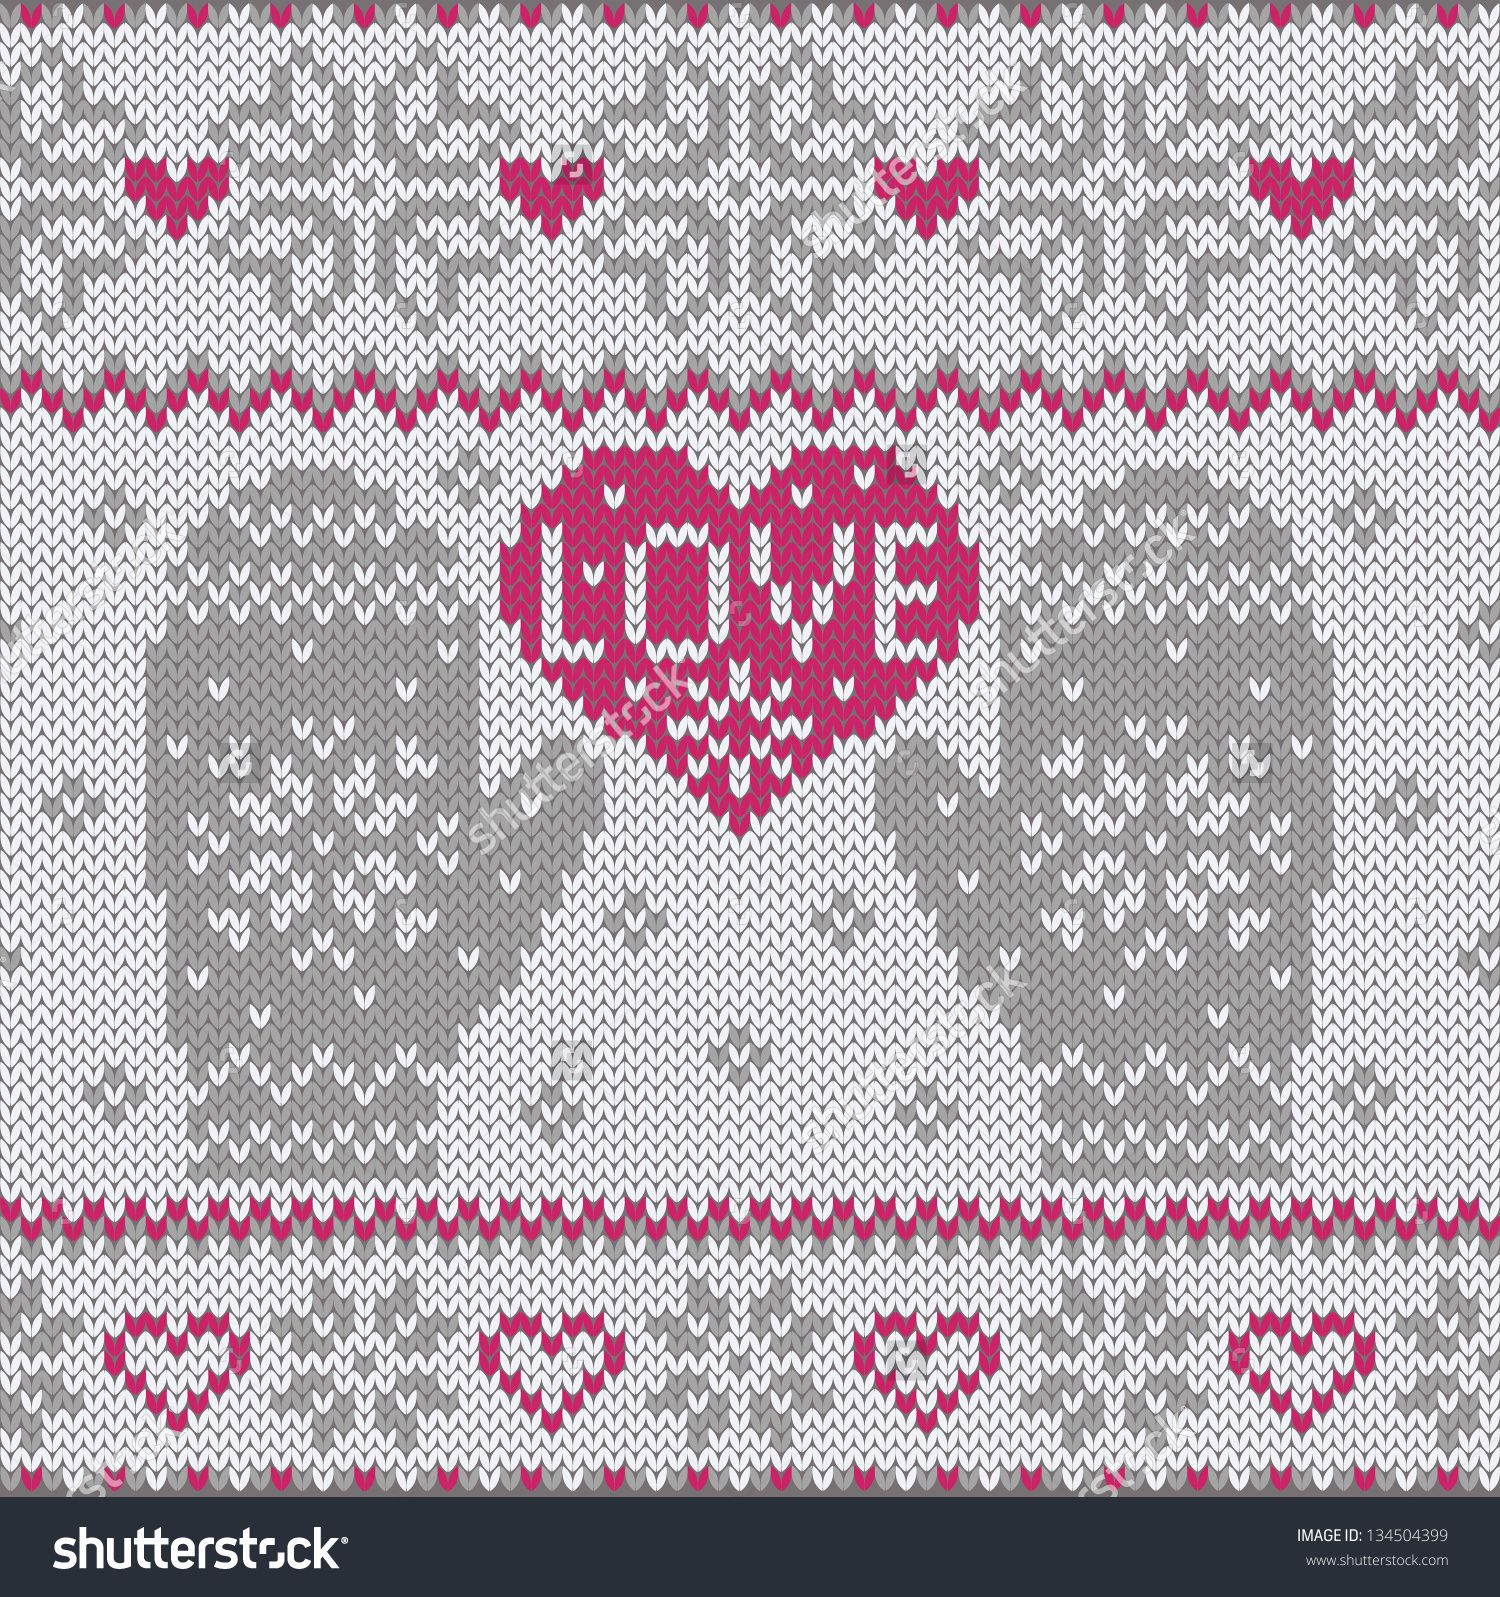 Knitted heart Love and mittens Fashionable nordic seamless pattern ...